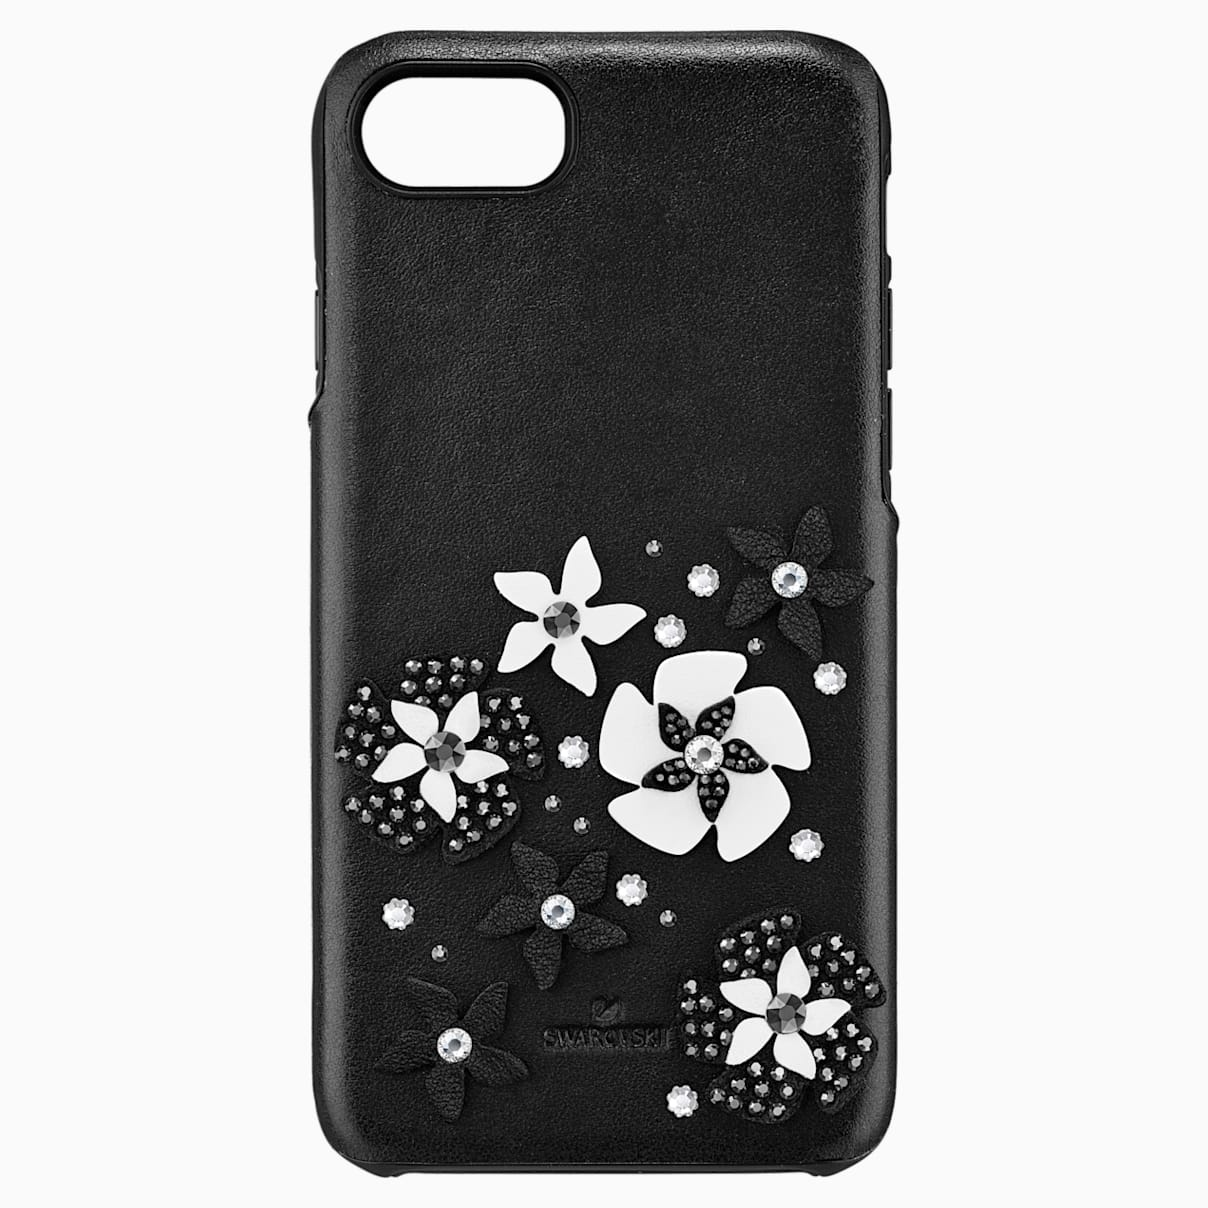 Custodia smartphone con bordi protettivi integrati Mazy, iPhone® 8, nero